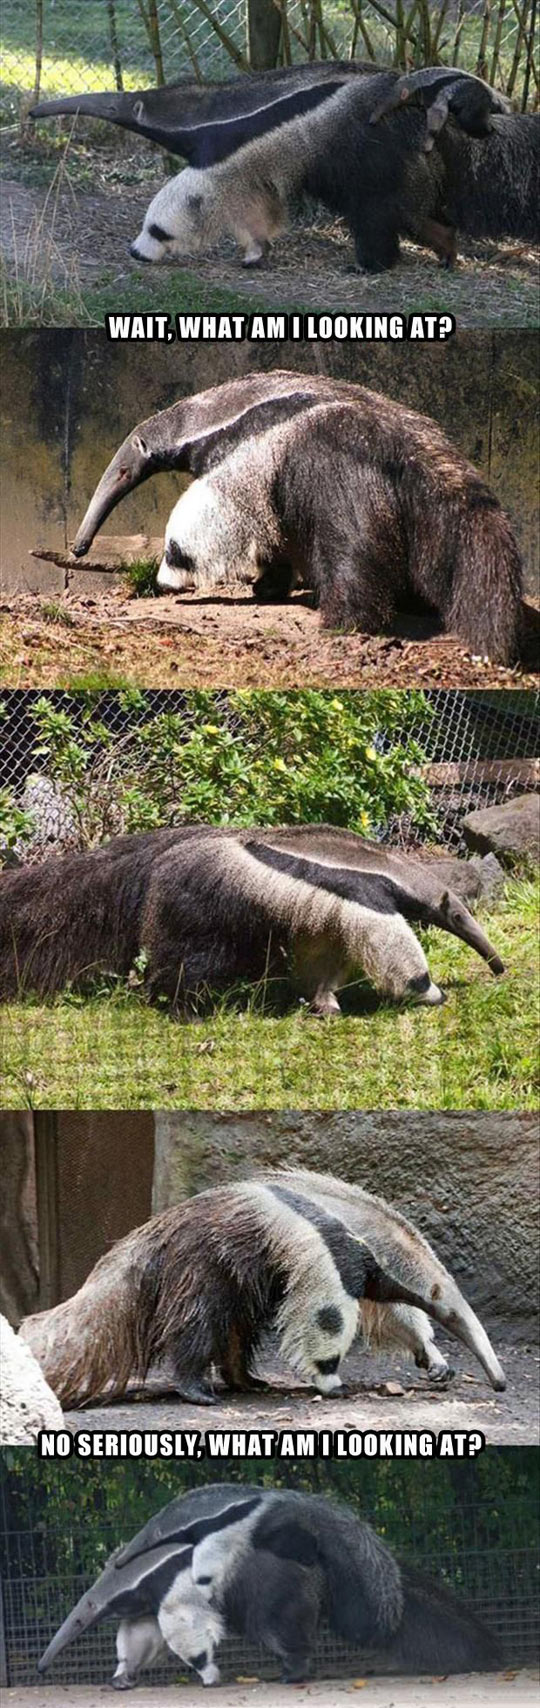 funny-giant-anteater-looking-at